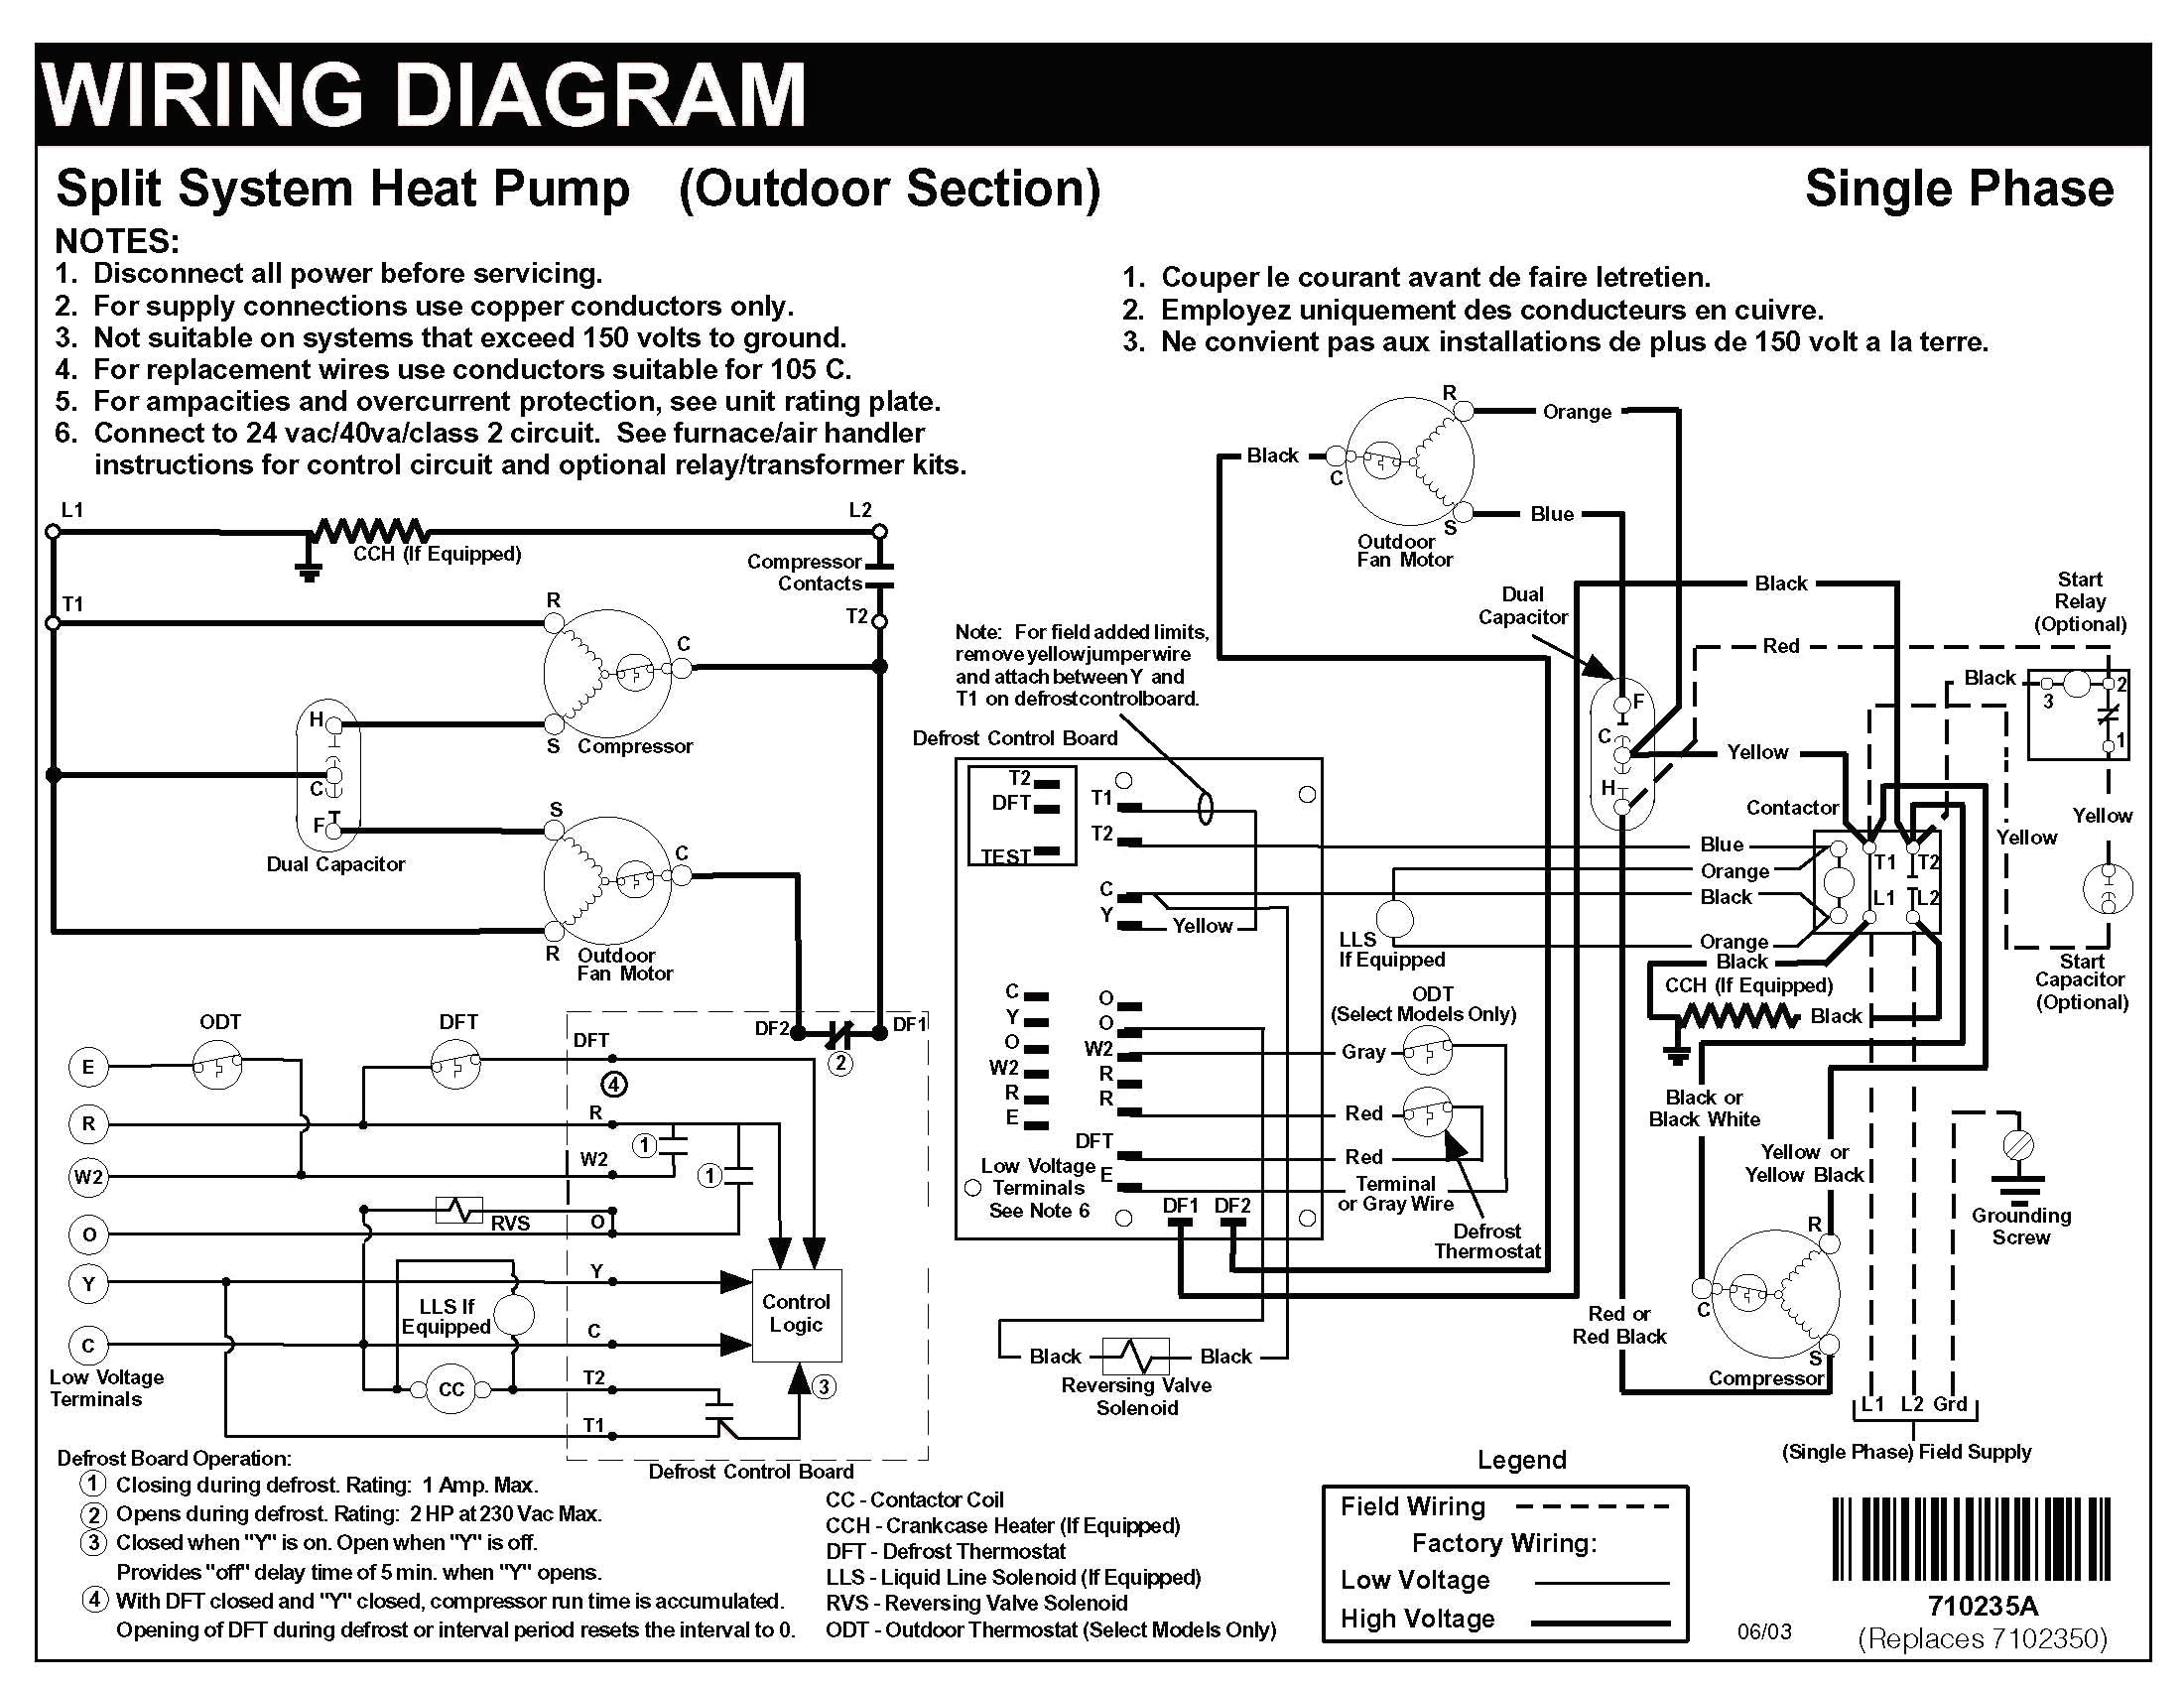 Carrier Heat Pump Wiring Diagram thermostat | Free Wiring Diagram on heat pump wiring color code, heat pump reversing valve wiring, york heat pump schematic, water source heat pump schematic, heat pump troubleshooting, heat pump control wiring, basic thermostat schematic, basic heat pump schematic, heat and air thermostat diagram, american standard heat pump schematic, heat only thermostat wiring diagram, carrier heat pump wiring schematic, heil heat pump schematic, rheem heat pump wiring schematic, trane heat pump wiring schematic, heat pump electrical wiring, heat pump condenser replacement, heat pump electrical schematic, bryant heat pump schematic, hvac heat pump wiring schematic,